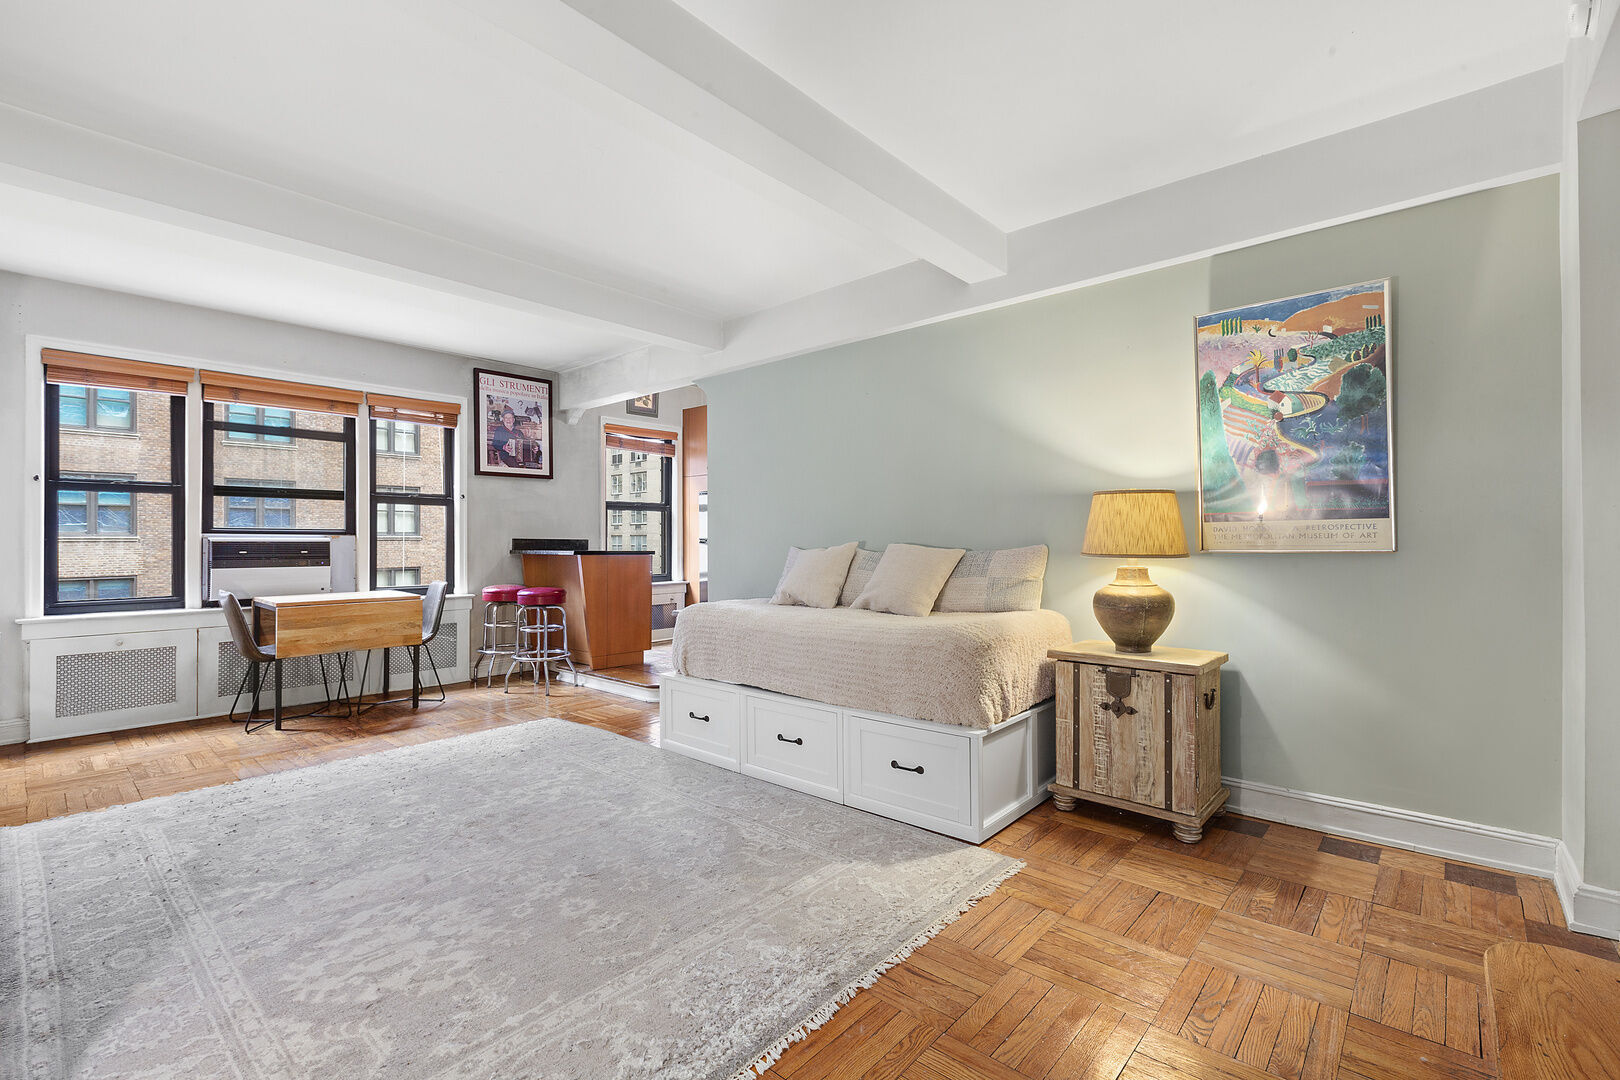 Apartment for sale at 123 East 37th Street, Apt 6-G